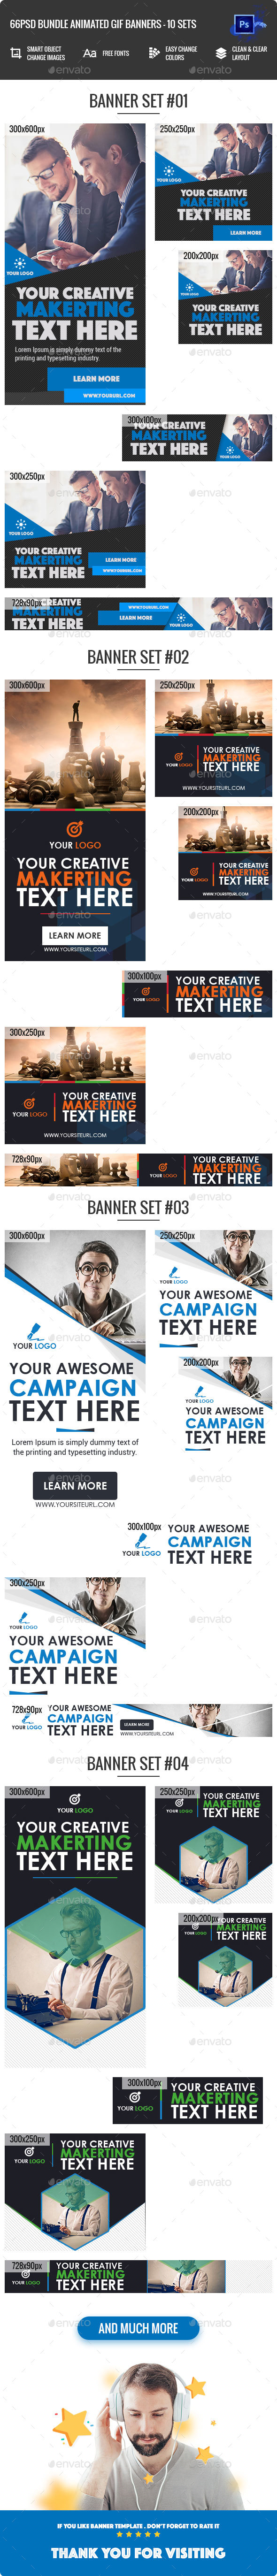 GraphicRiver Bundle Animated GIF Multipurpose Business Corporate Banners Ad 11 Sets 21123198